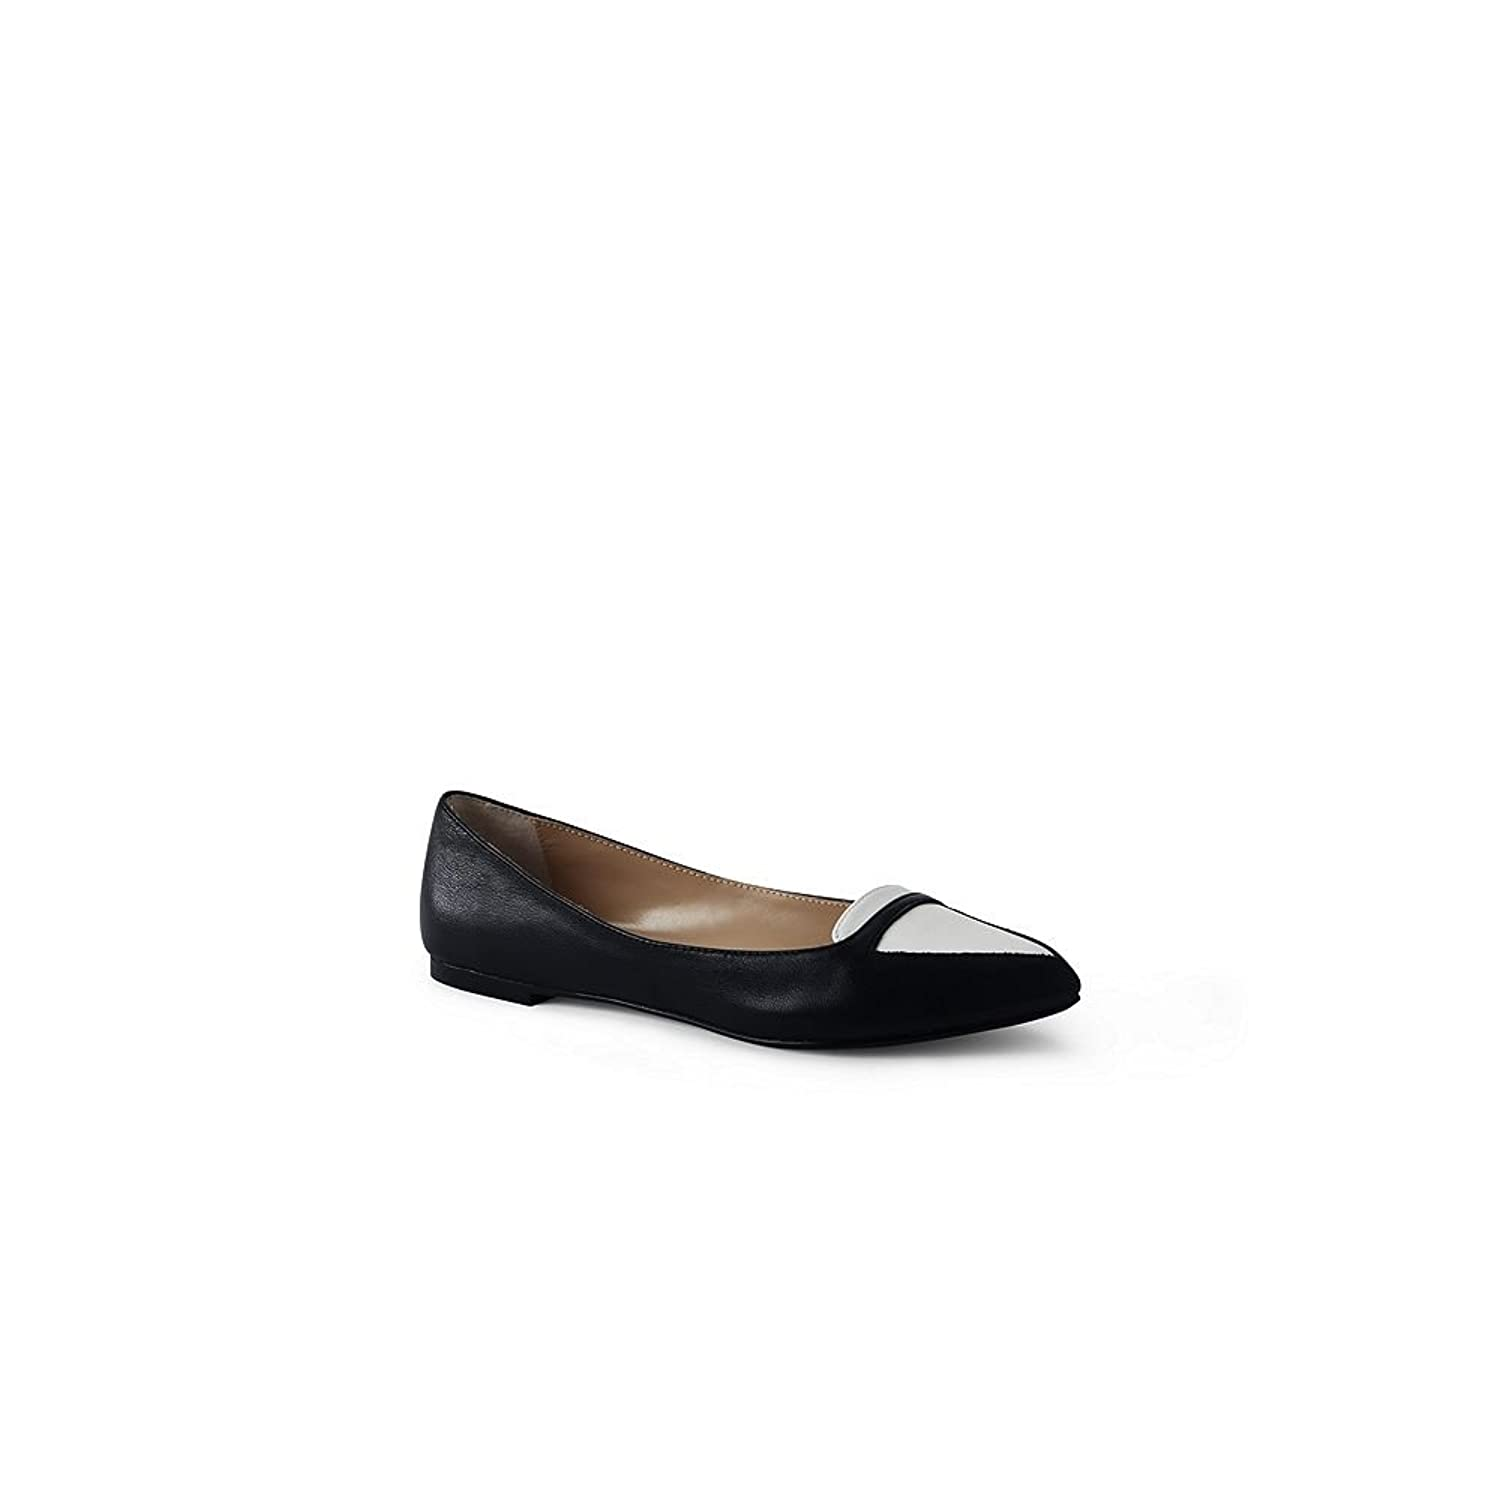 Lands' End Canvas Women's Contrast Flats, Black/White